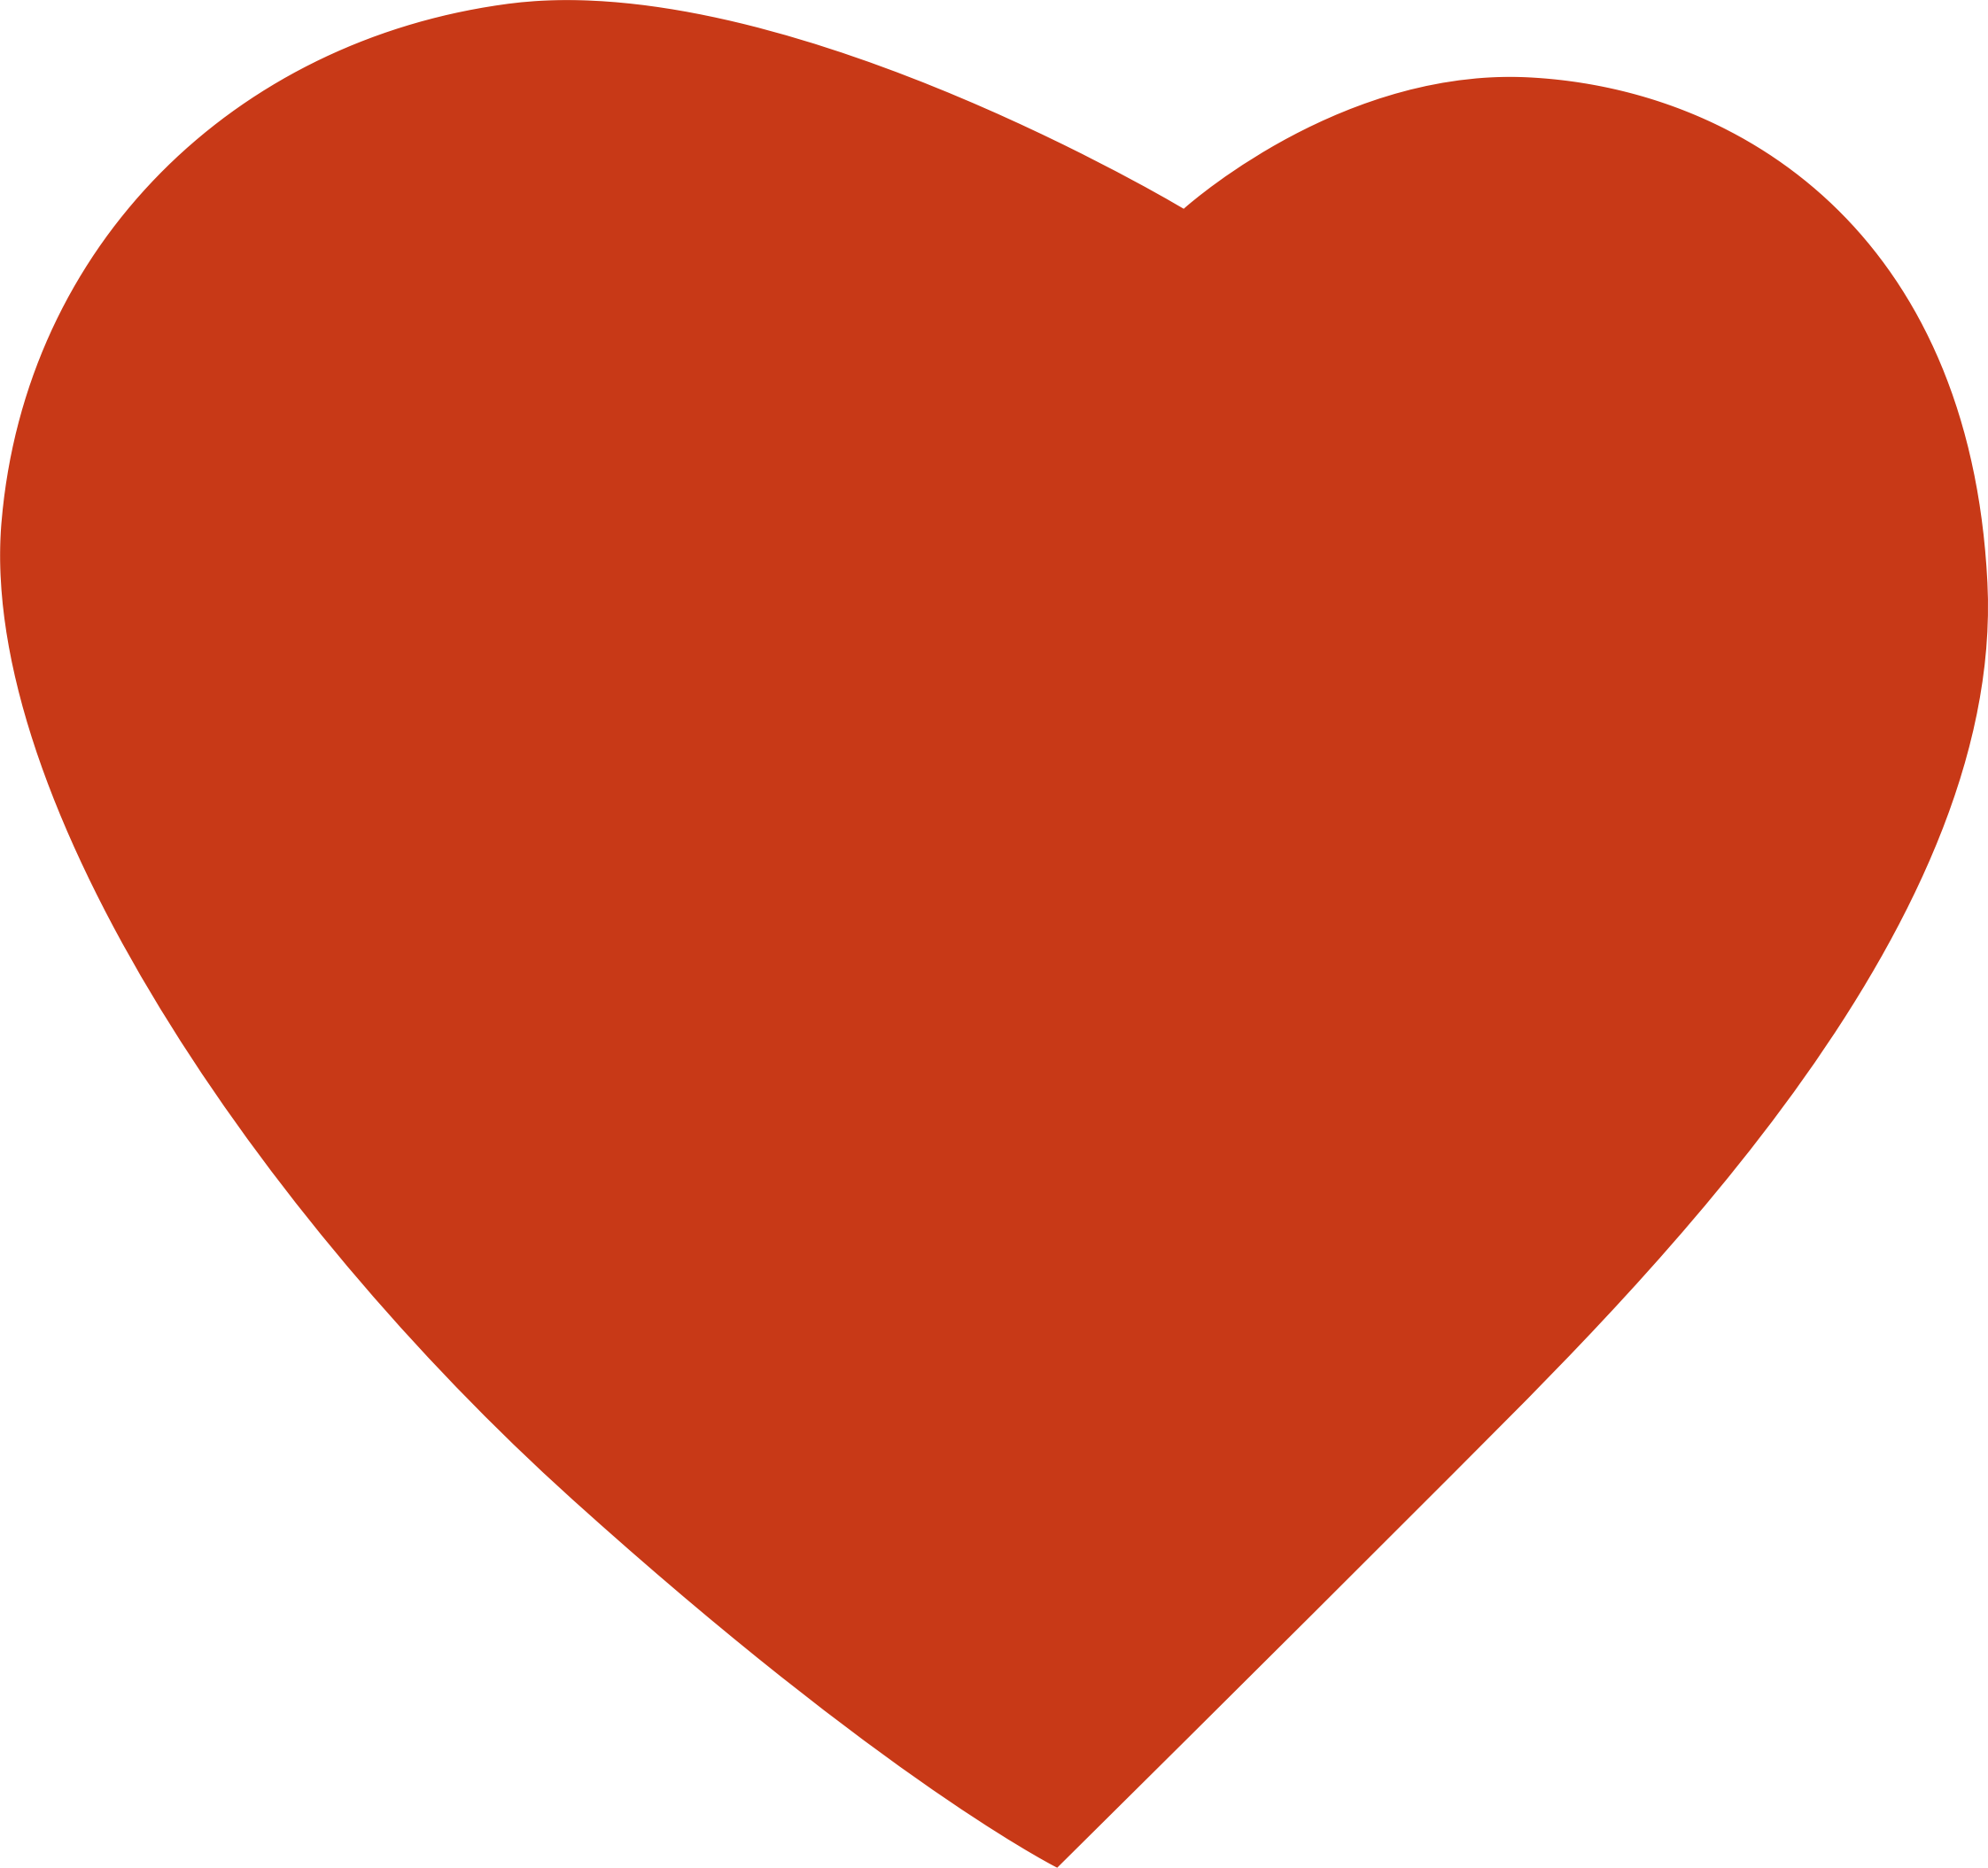 clipart heart orange